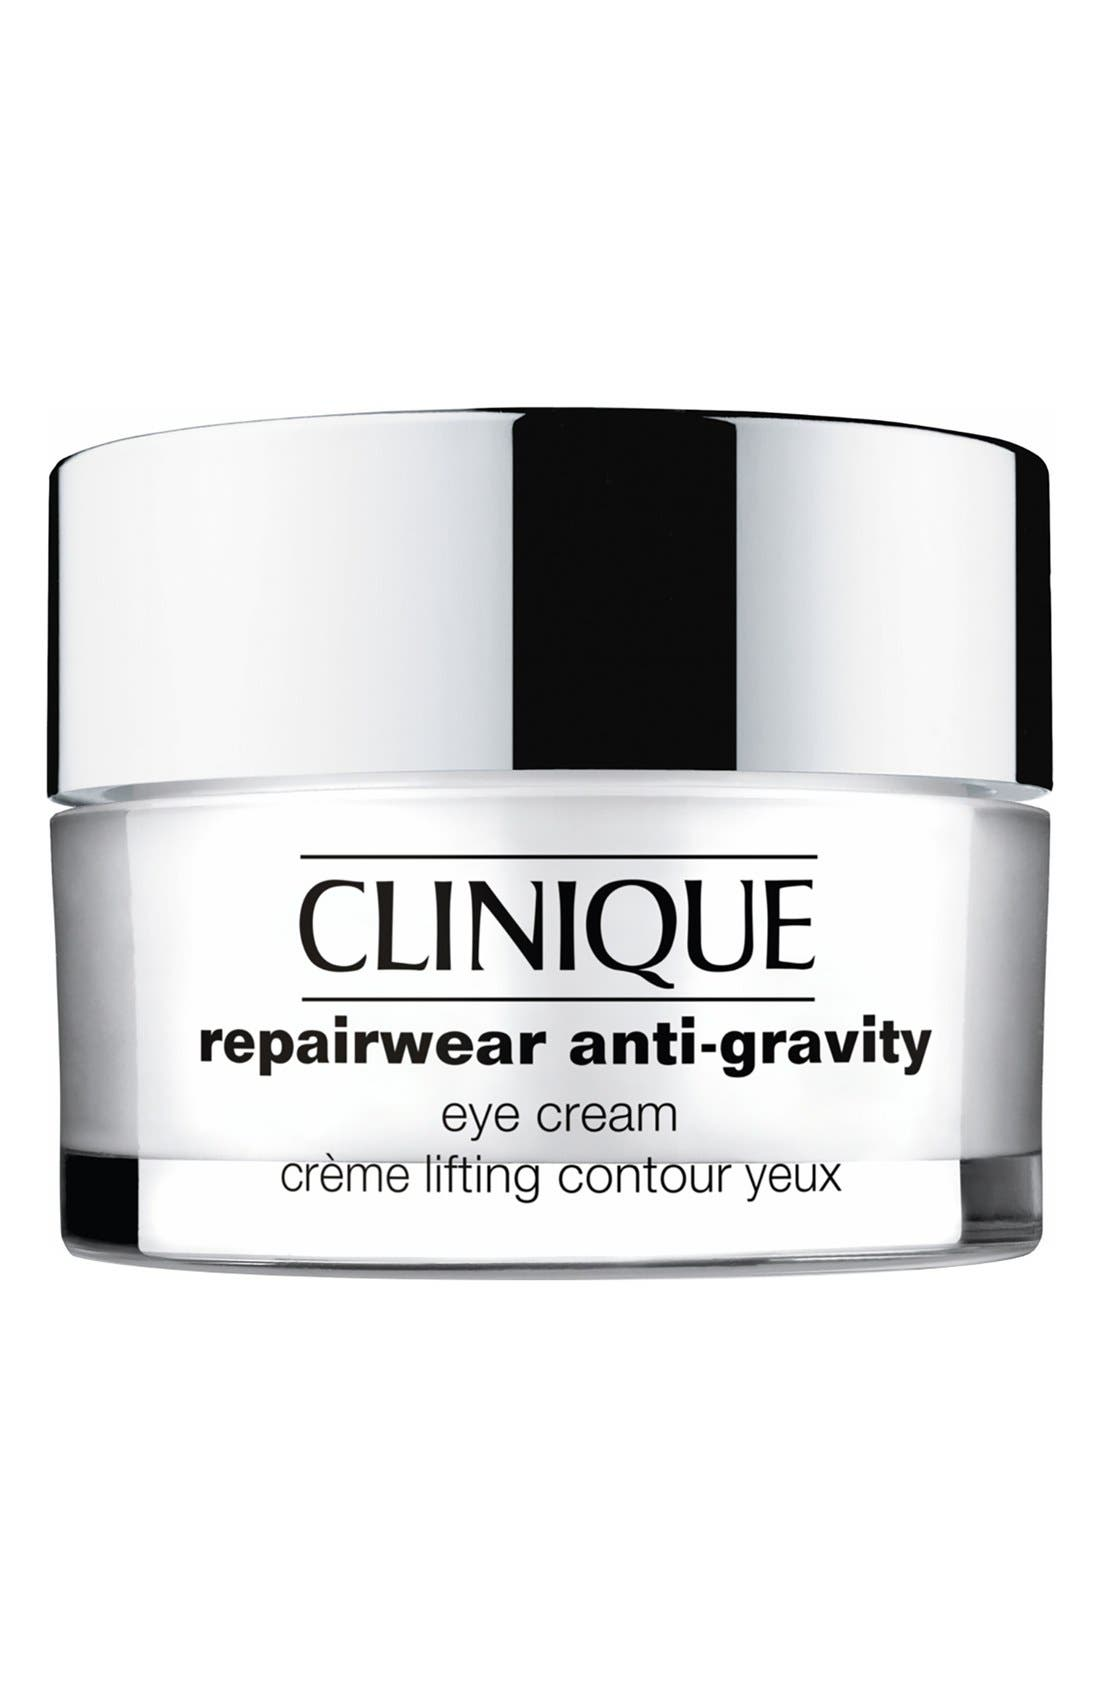 Clinique 'Repairwear Anti-Gravity' Eye Cream